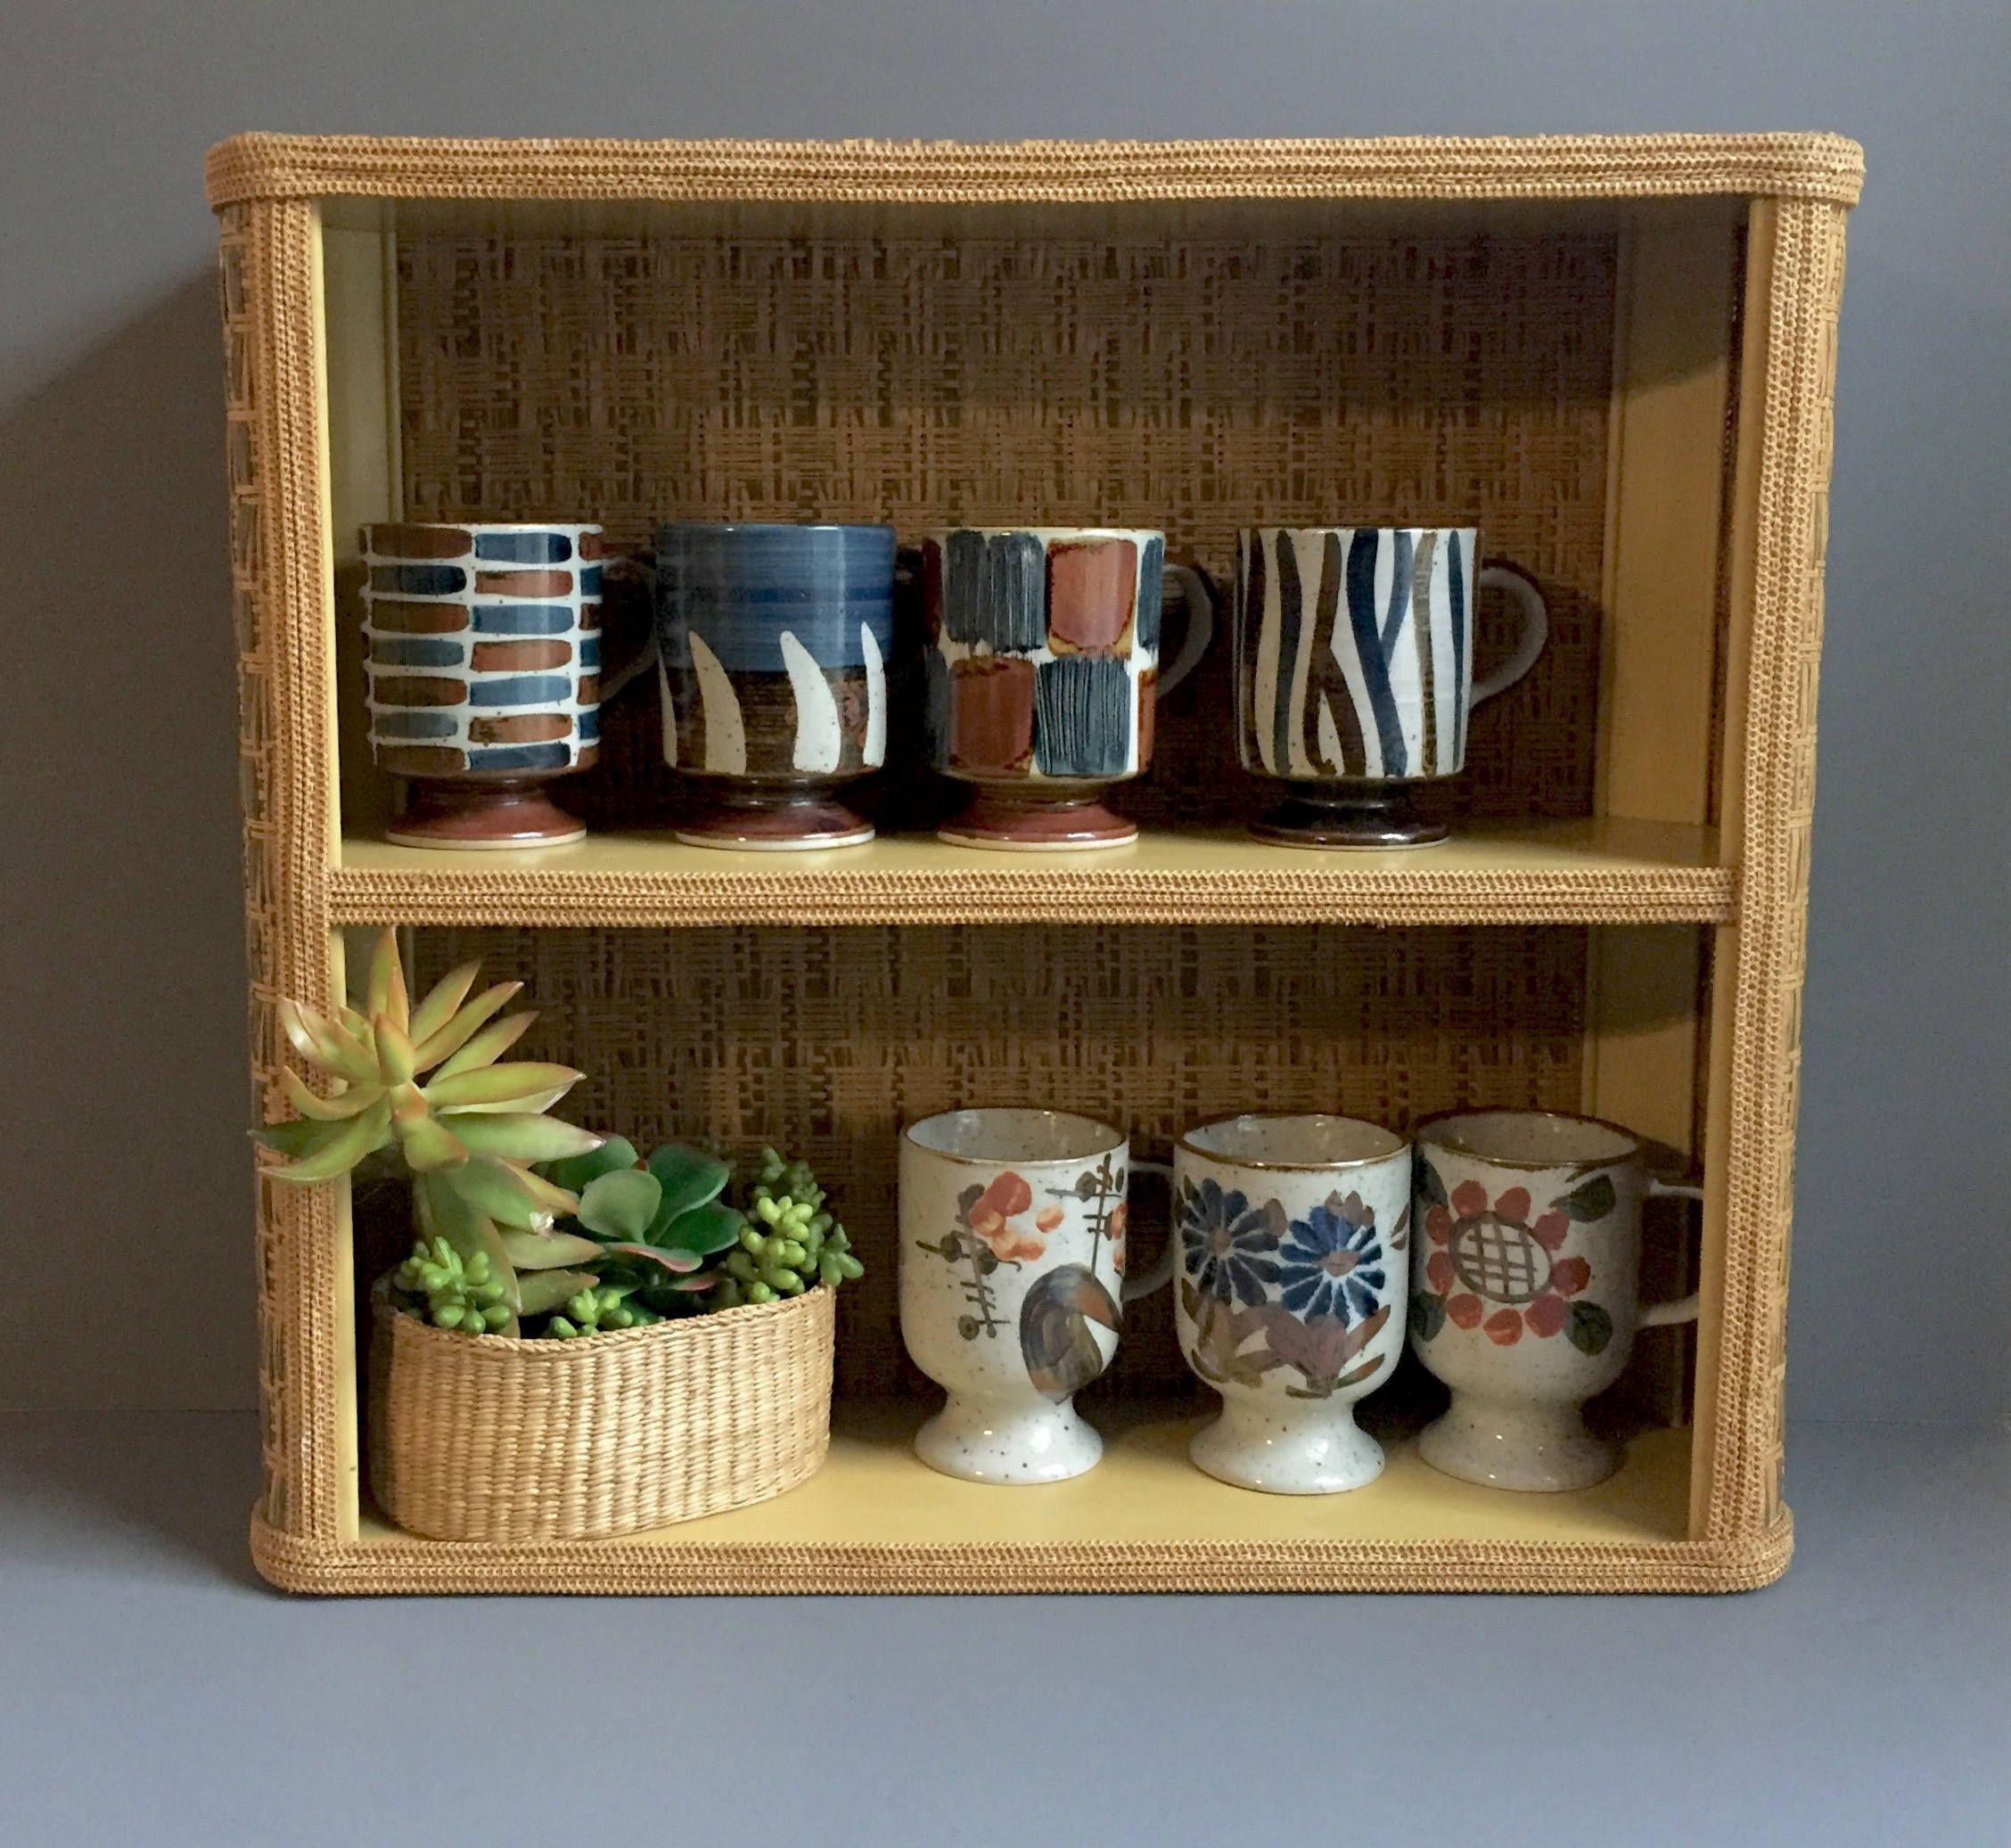 Small Wicker Wall Shelf By 1006osage On Etsy Small Wall Shelf Wall Shelves Shelves